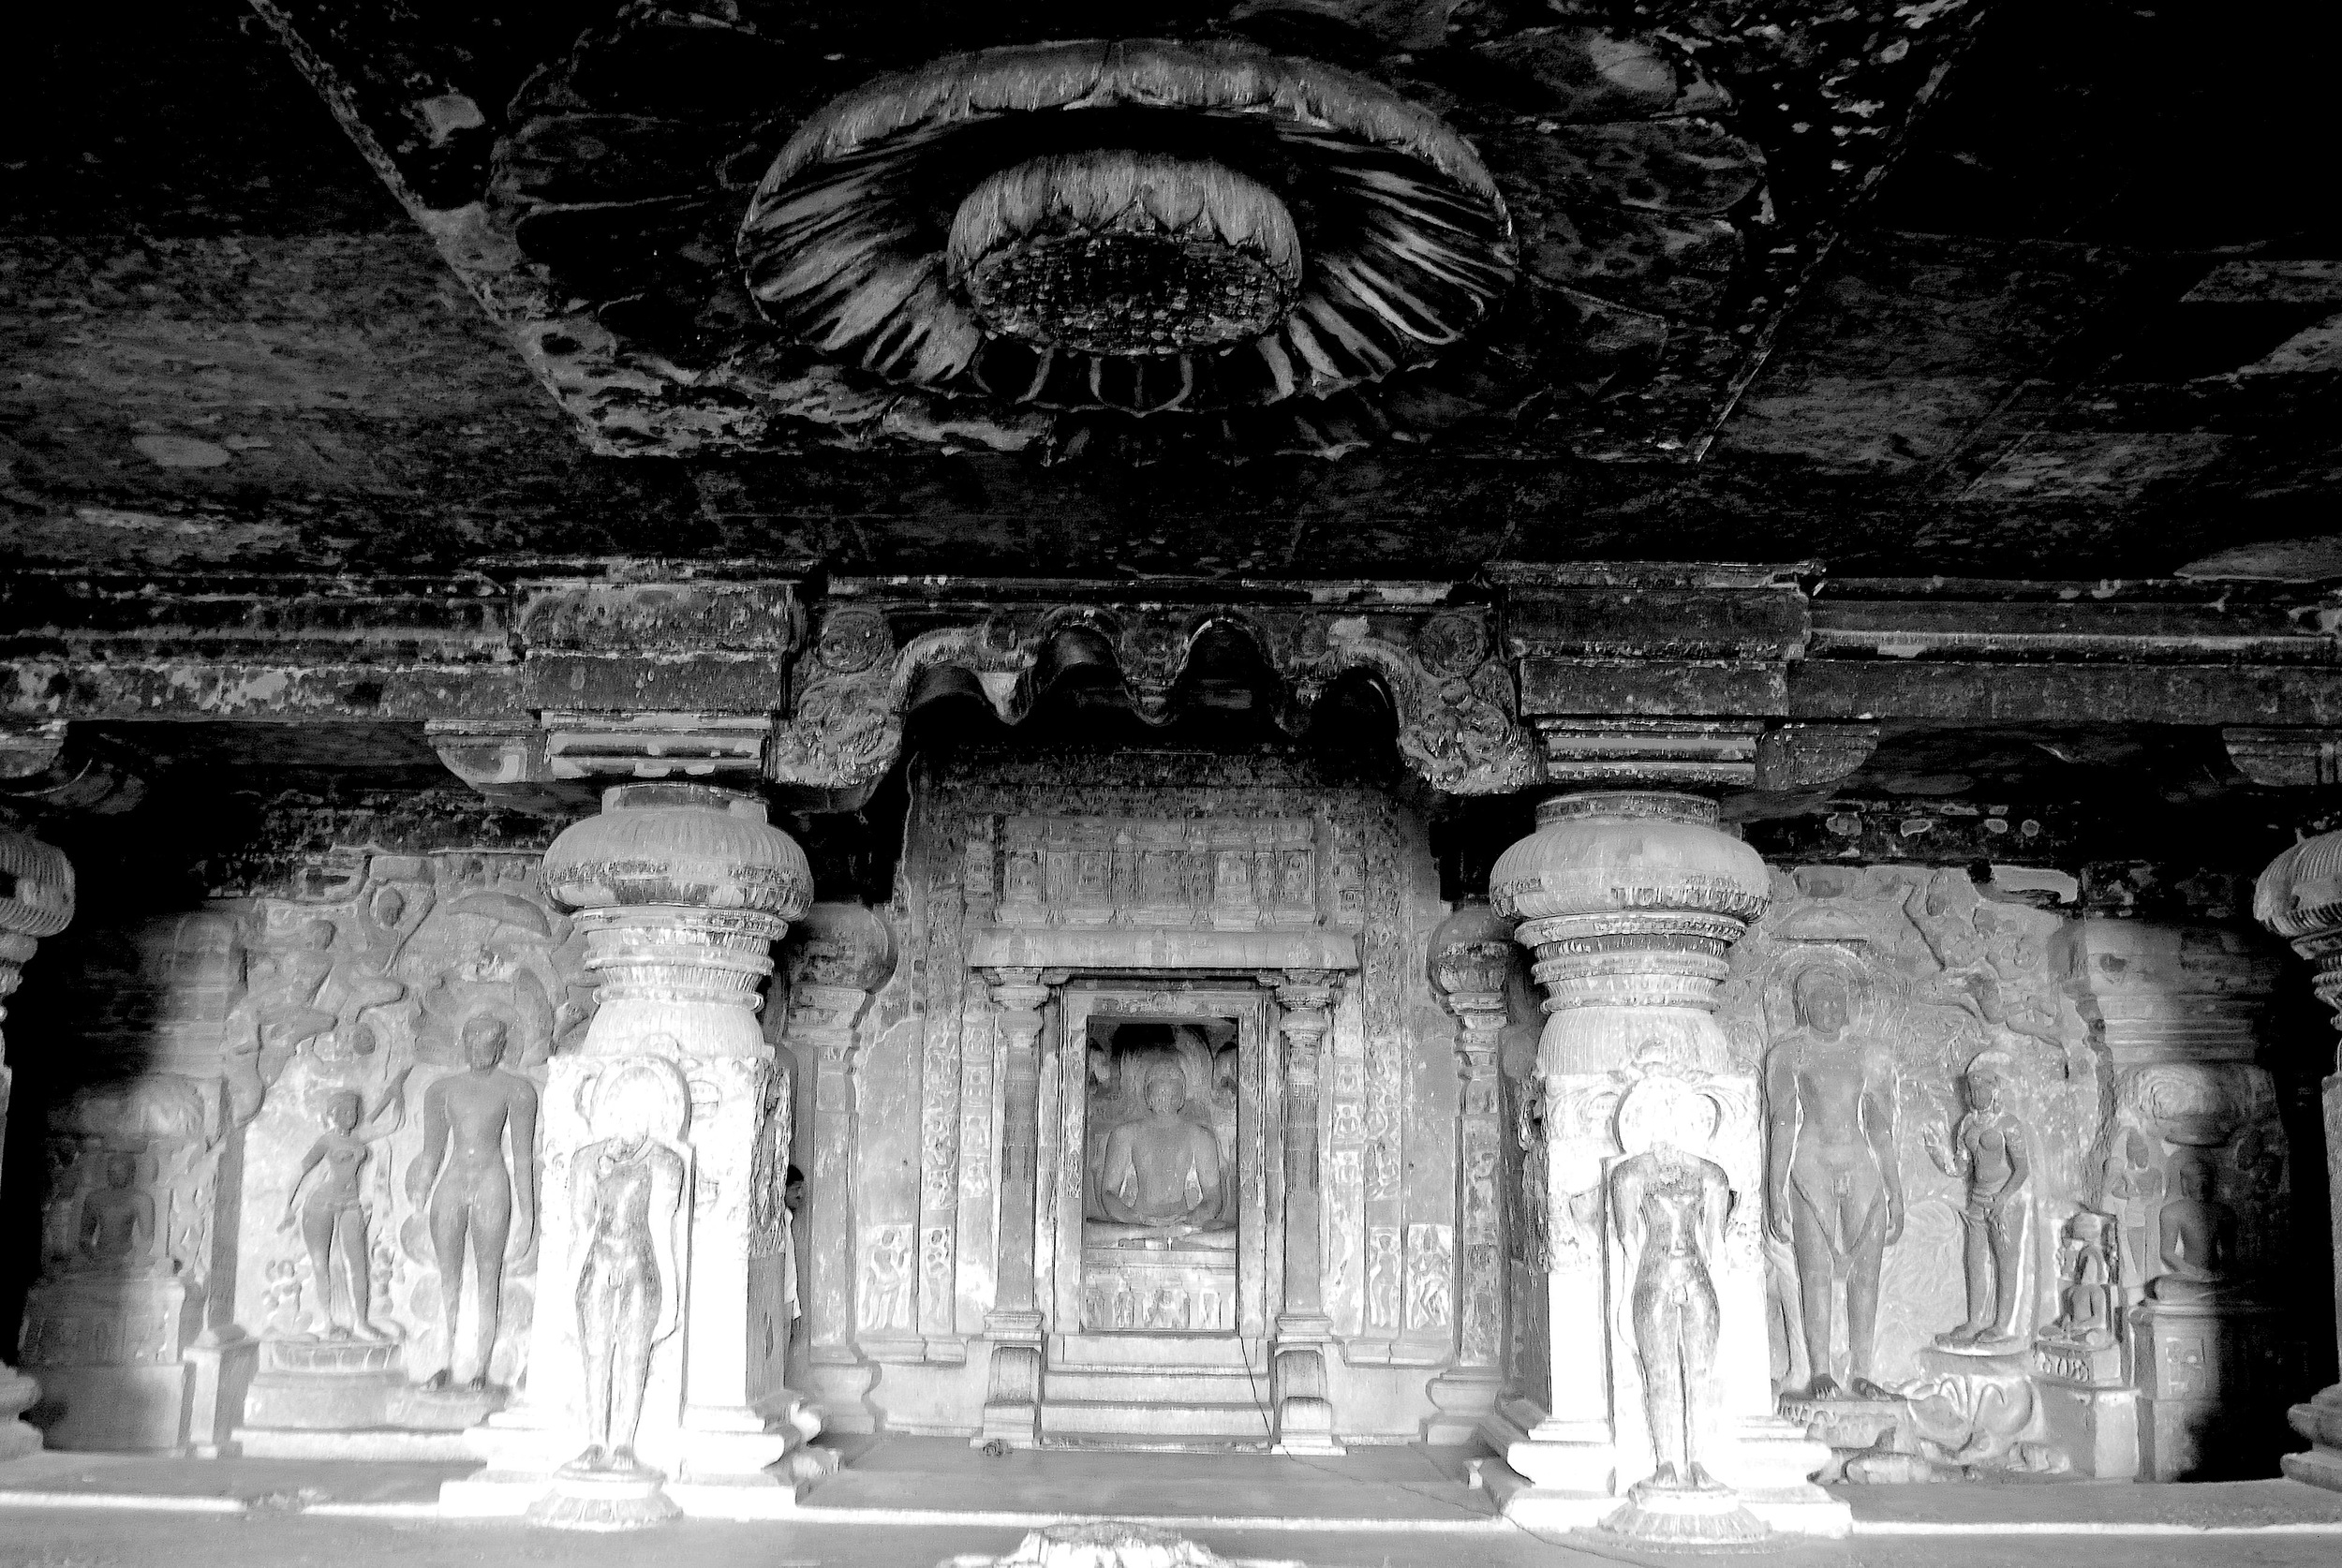 Cave 32, the most spectacular of the Jain complex at Ellora